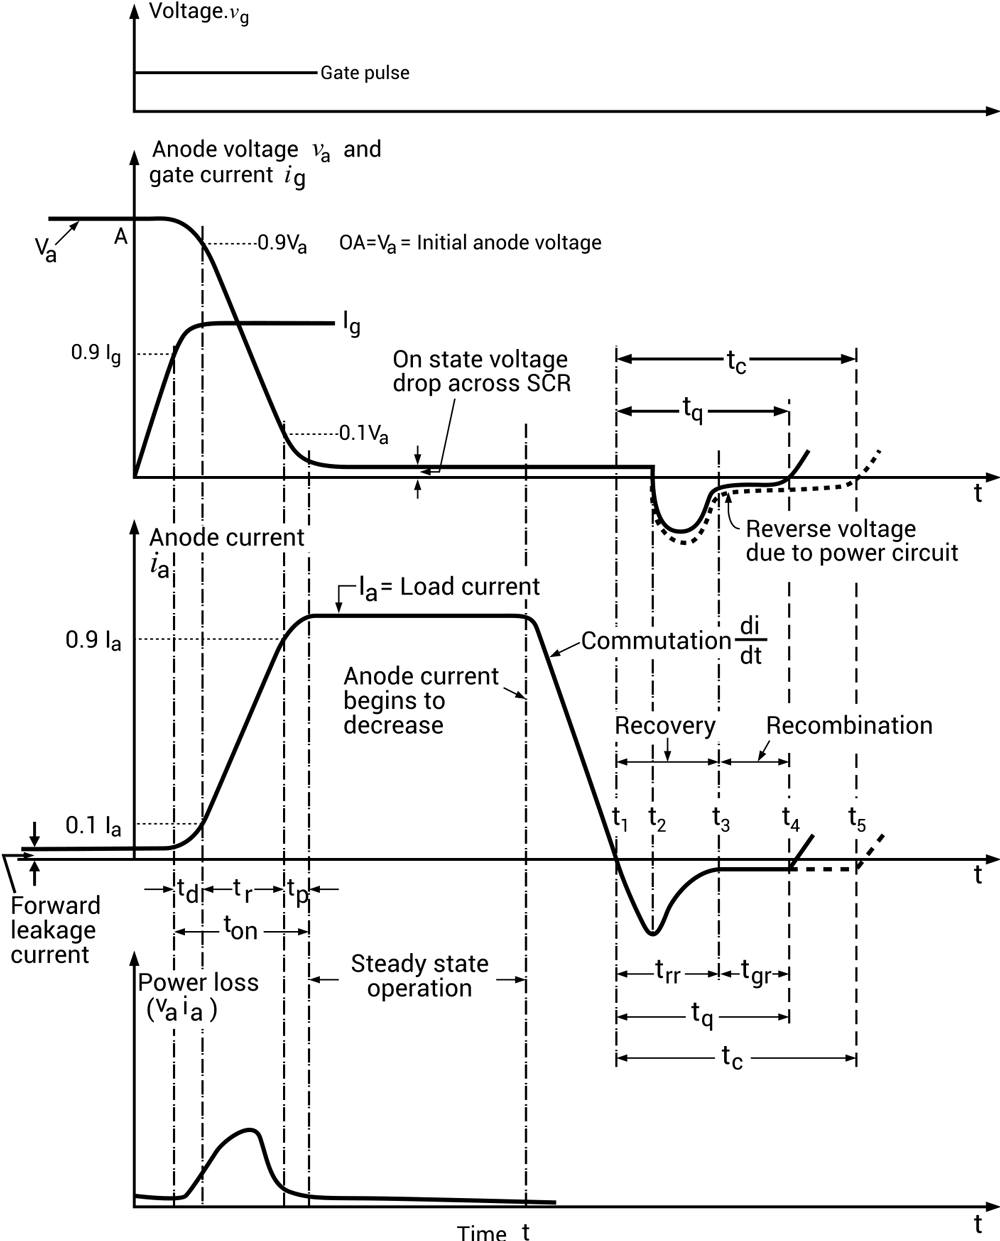 medium resolution of turn on and turn off characteristics of scr